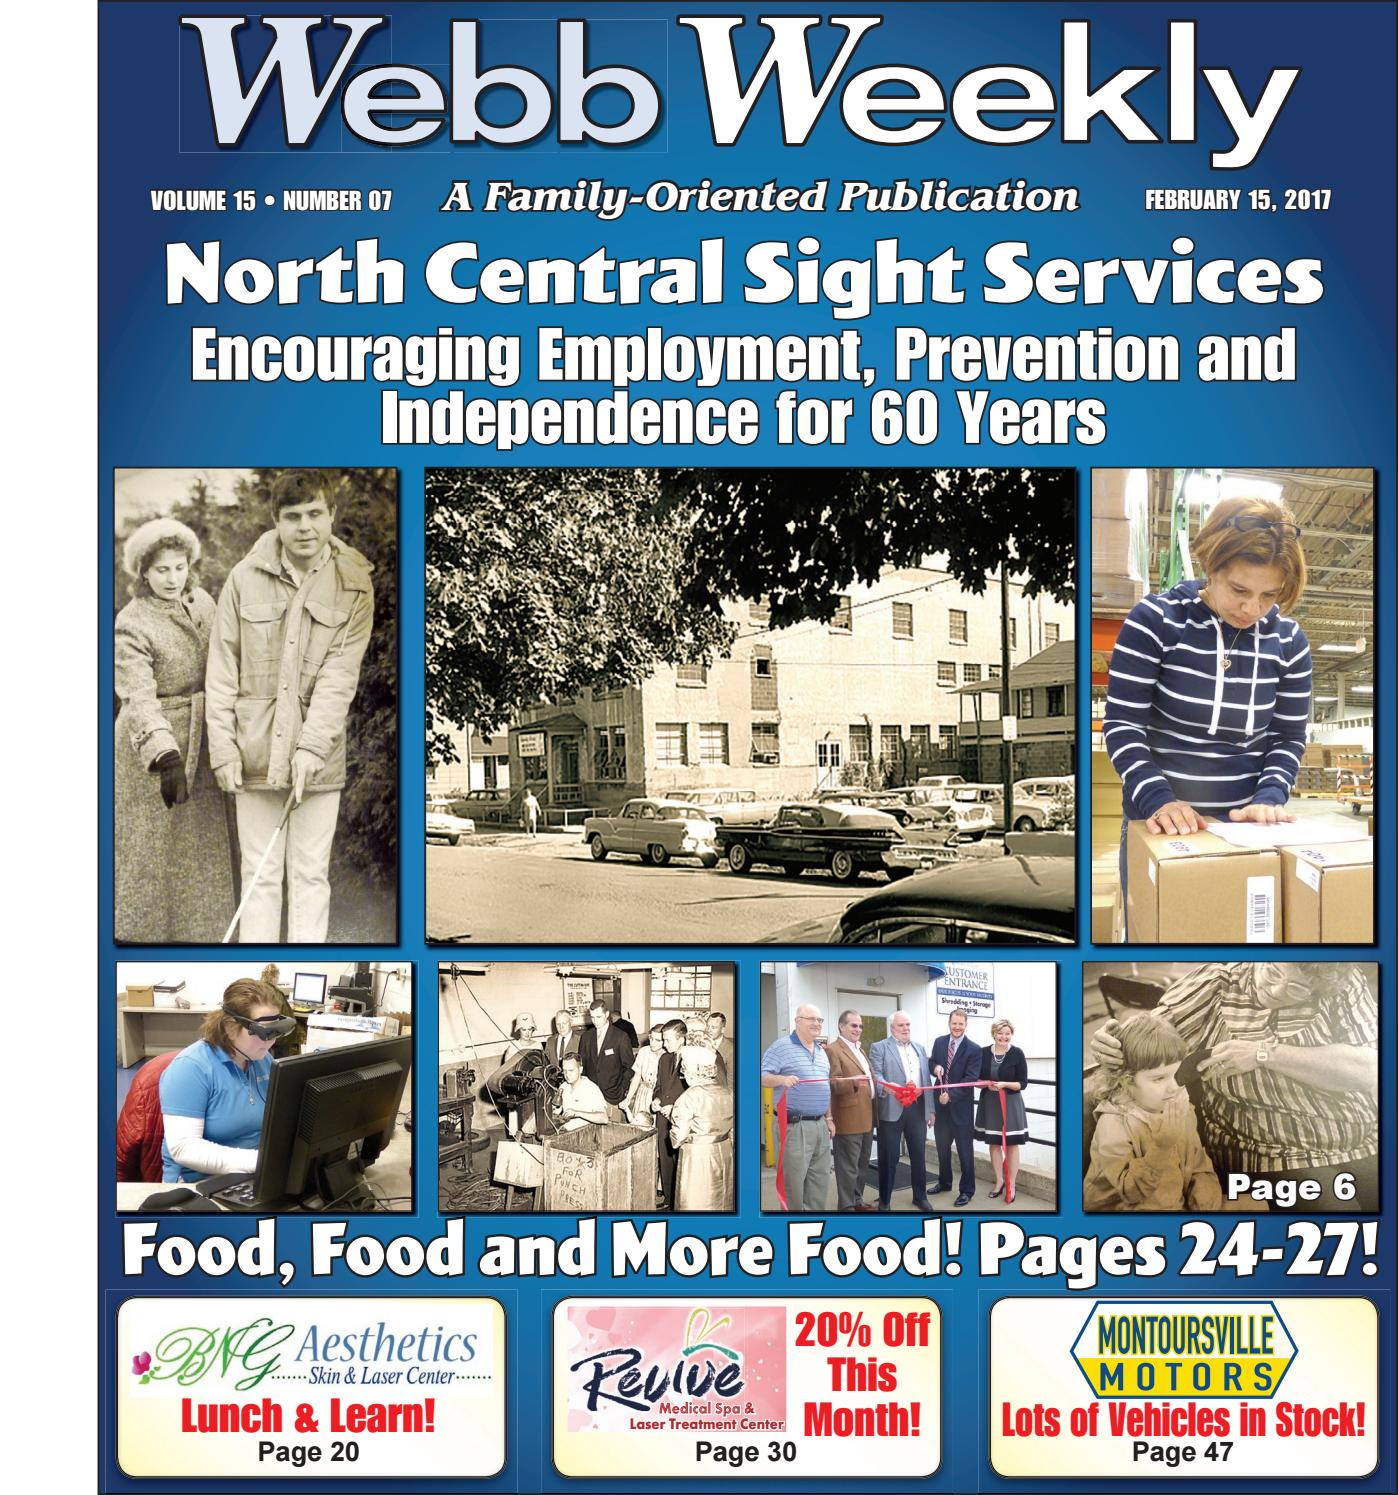 Webb Weekly February 15 2017 by Webb Weekly issuu